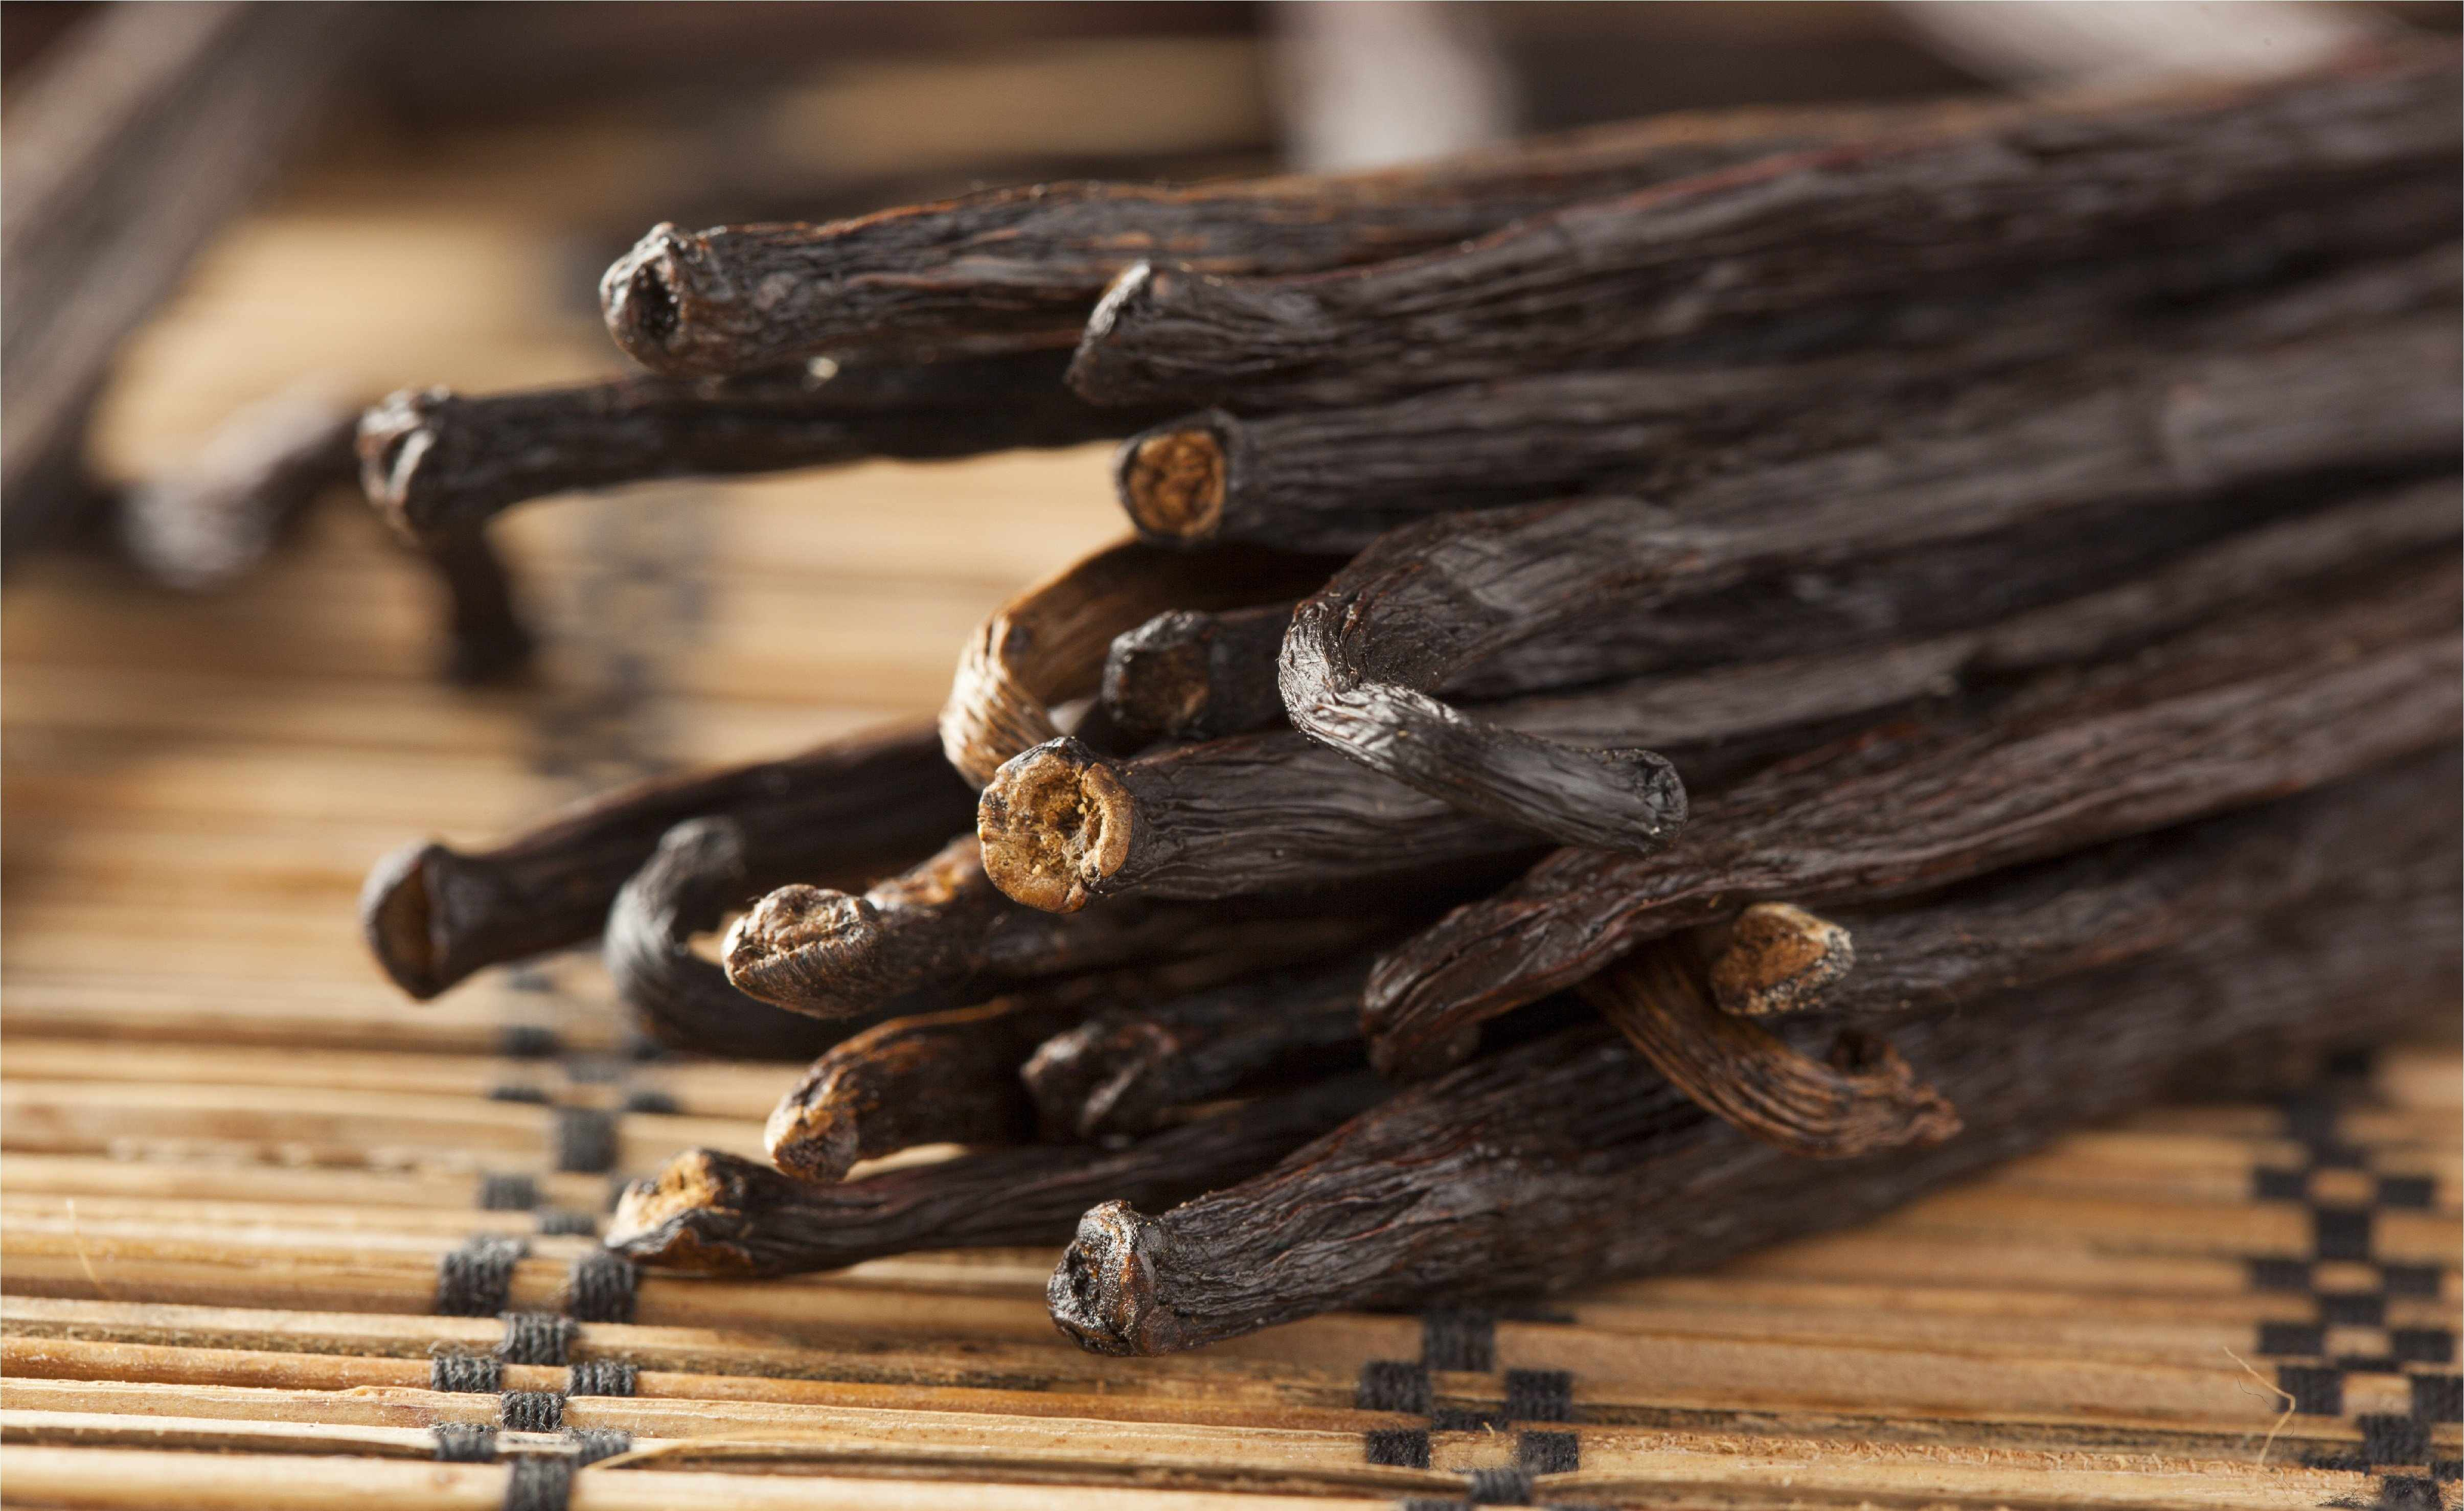 Tahitian Vanilla Beans - Whole Grade B Pods for Extract Making - Vanilla Bean Kings